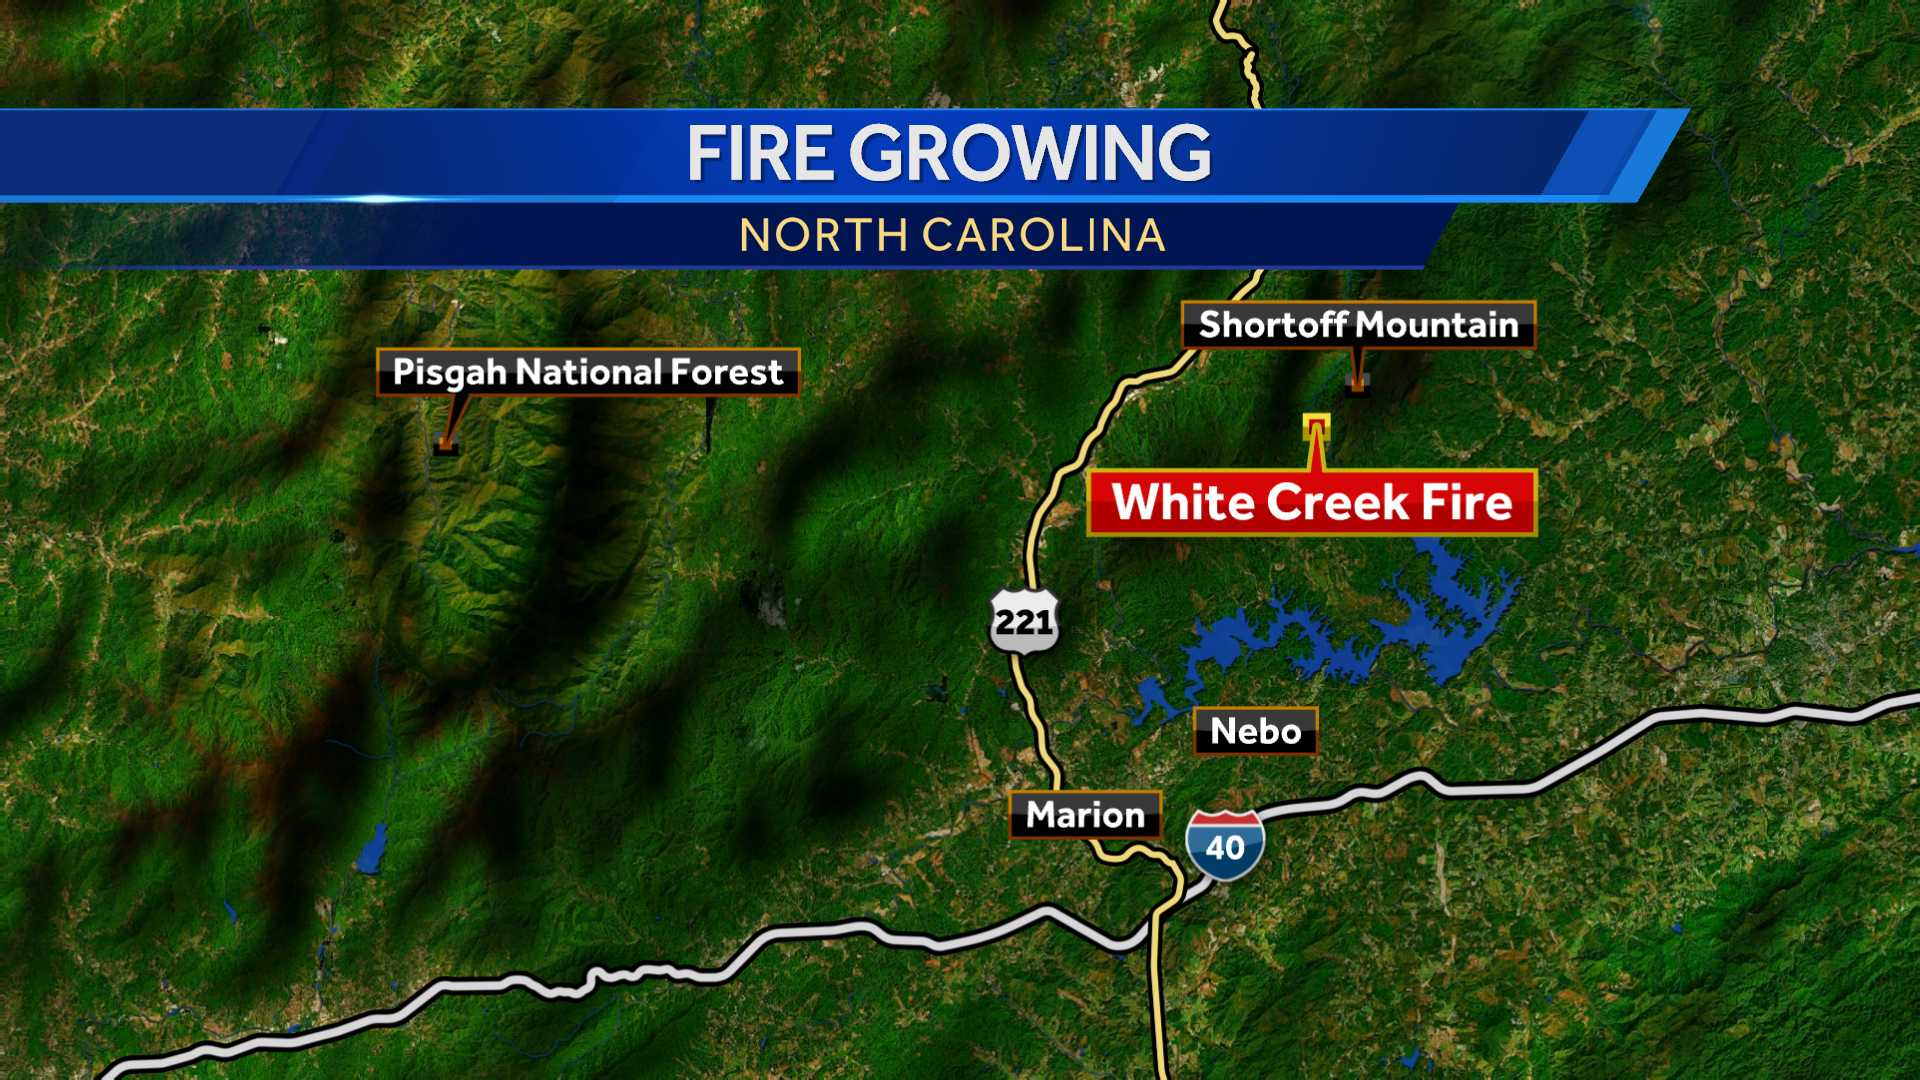 Firefighters conduct burnout operation on White Creek Fire at Linville Gorge